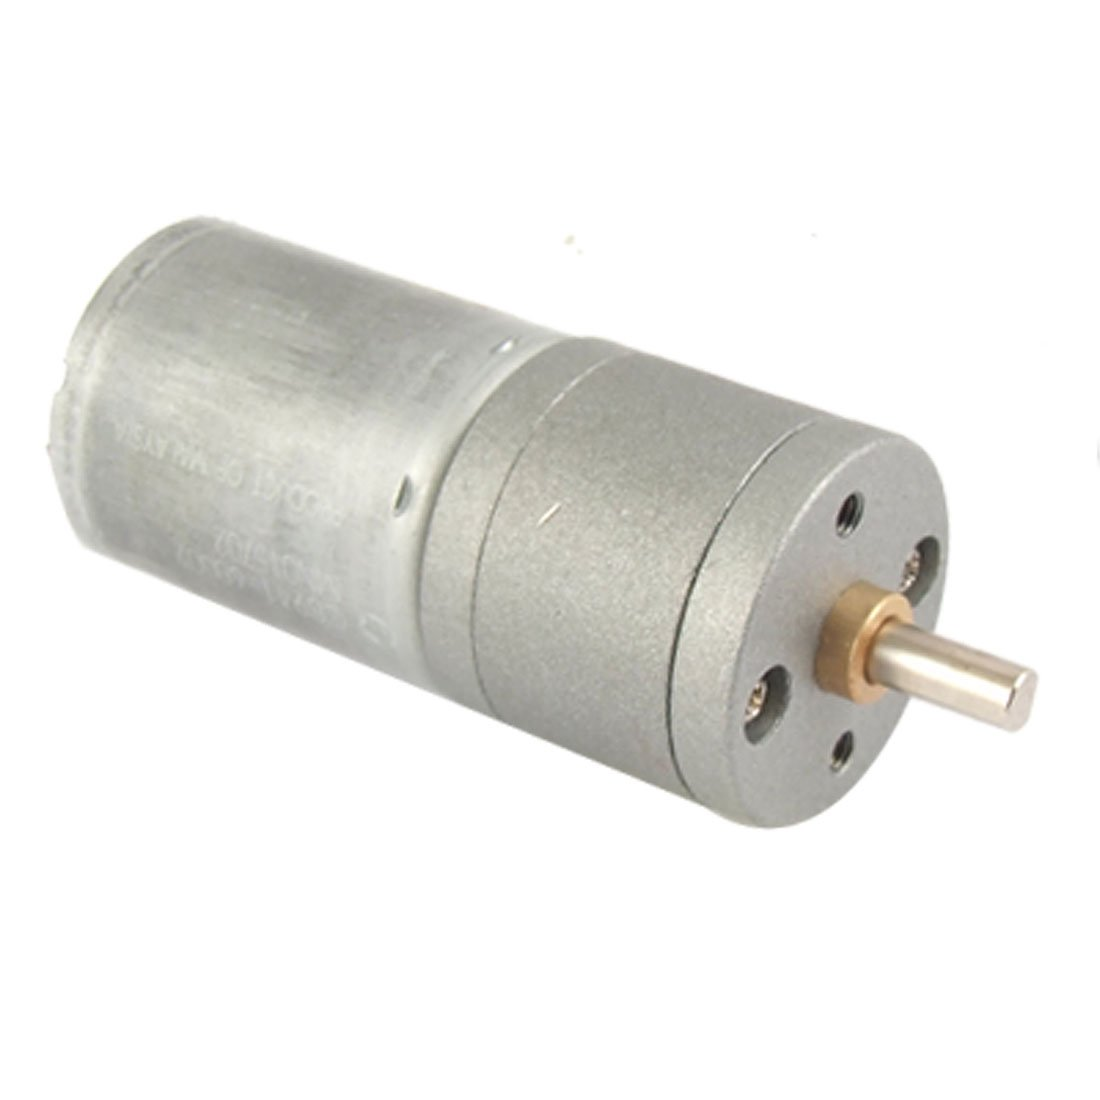 все цены на 12V DC 100RPM High Torque Gear Box Electric Motor 25mm онлайн